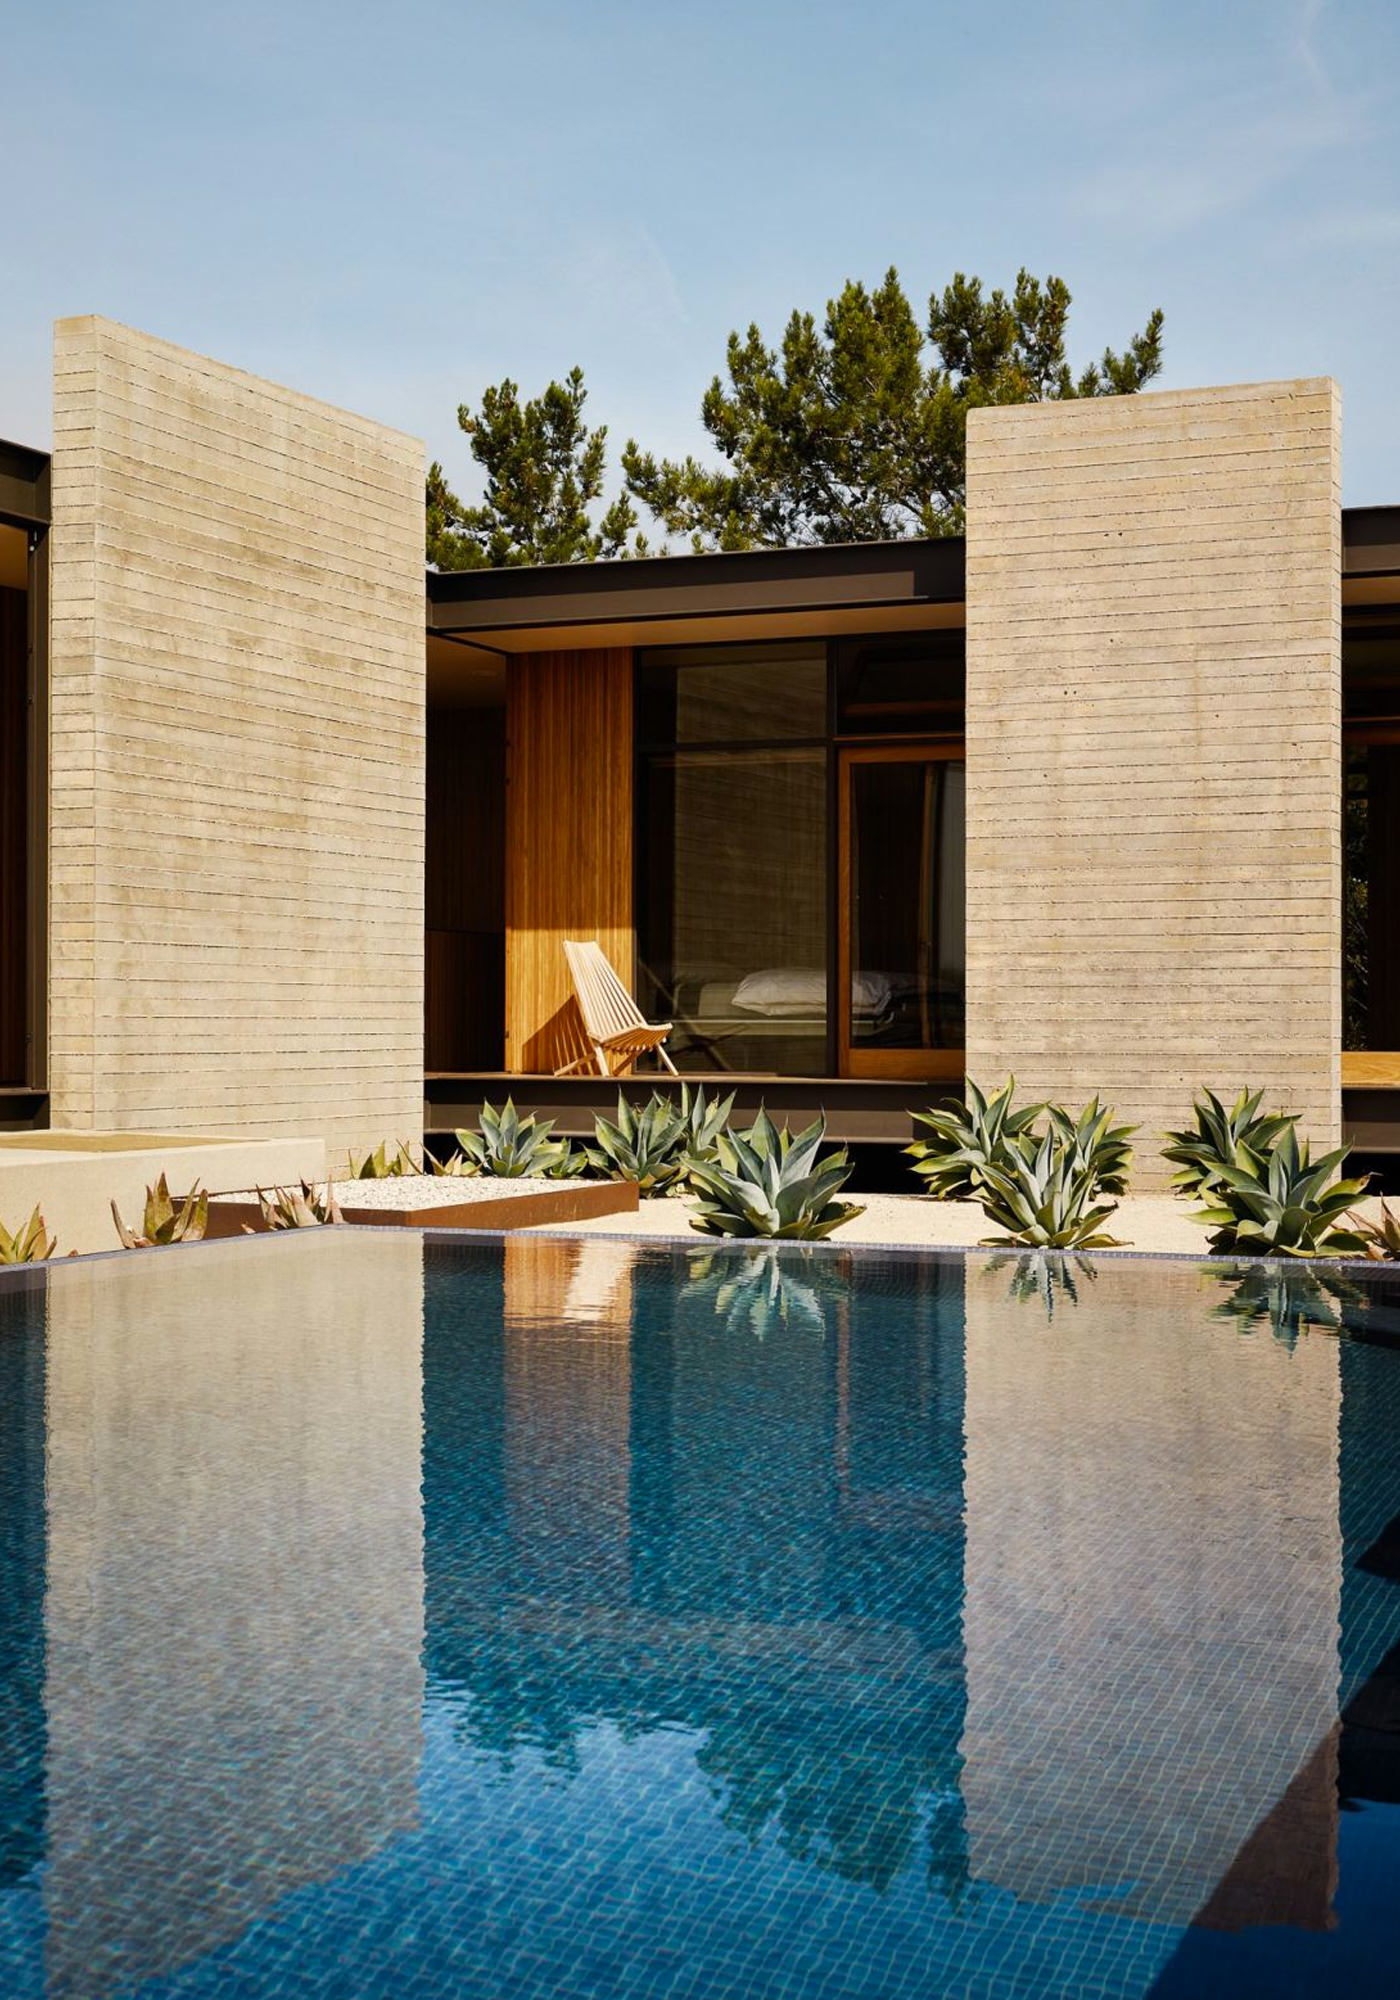 Architecture Maison Topanga Canyon Californie